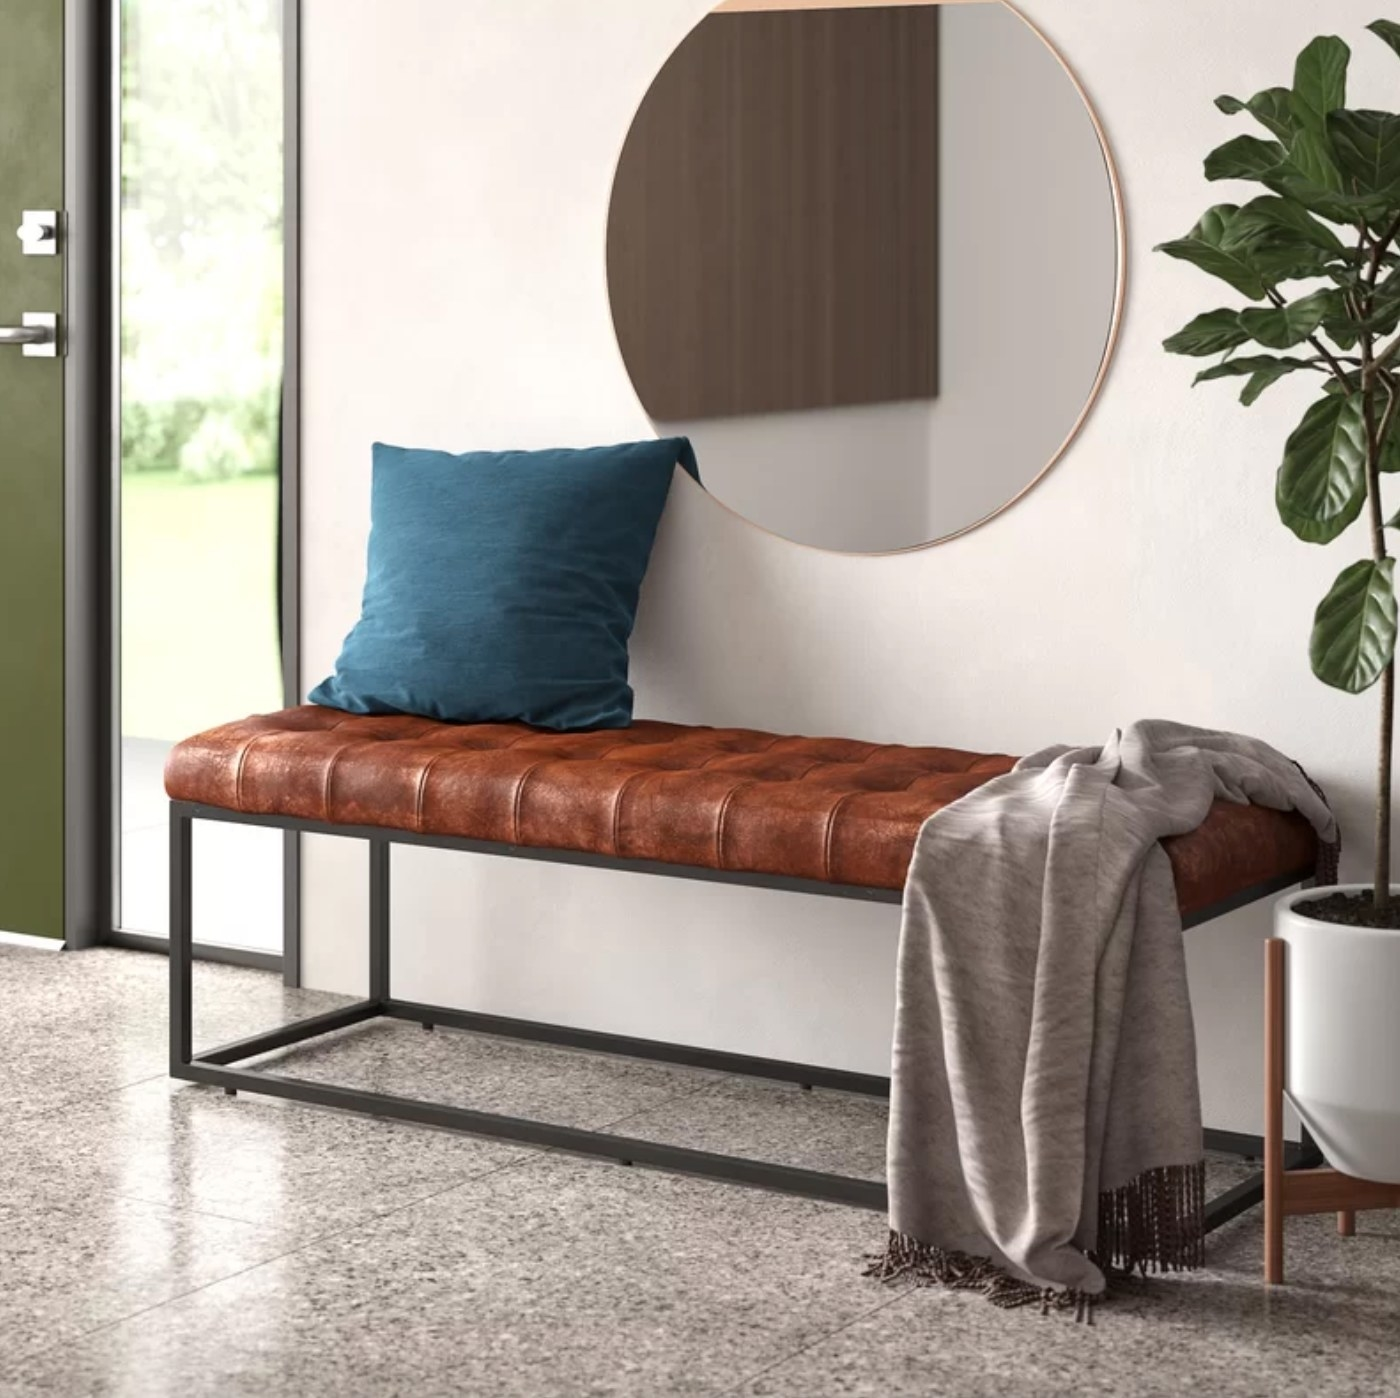 The leather bench